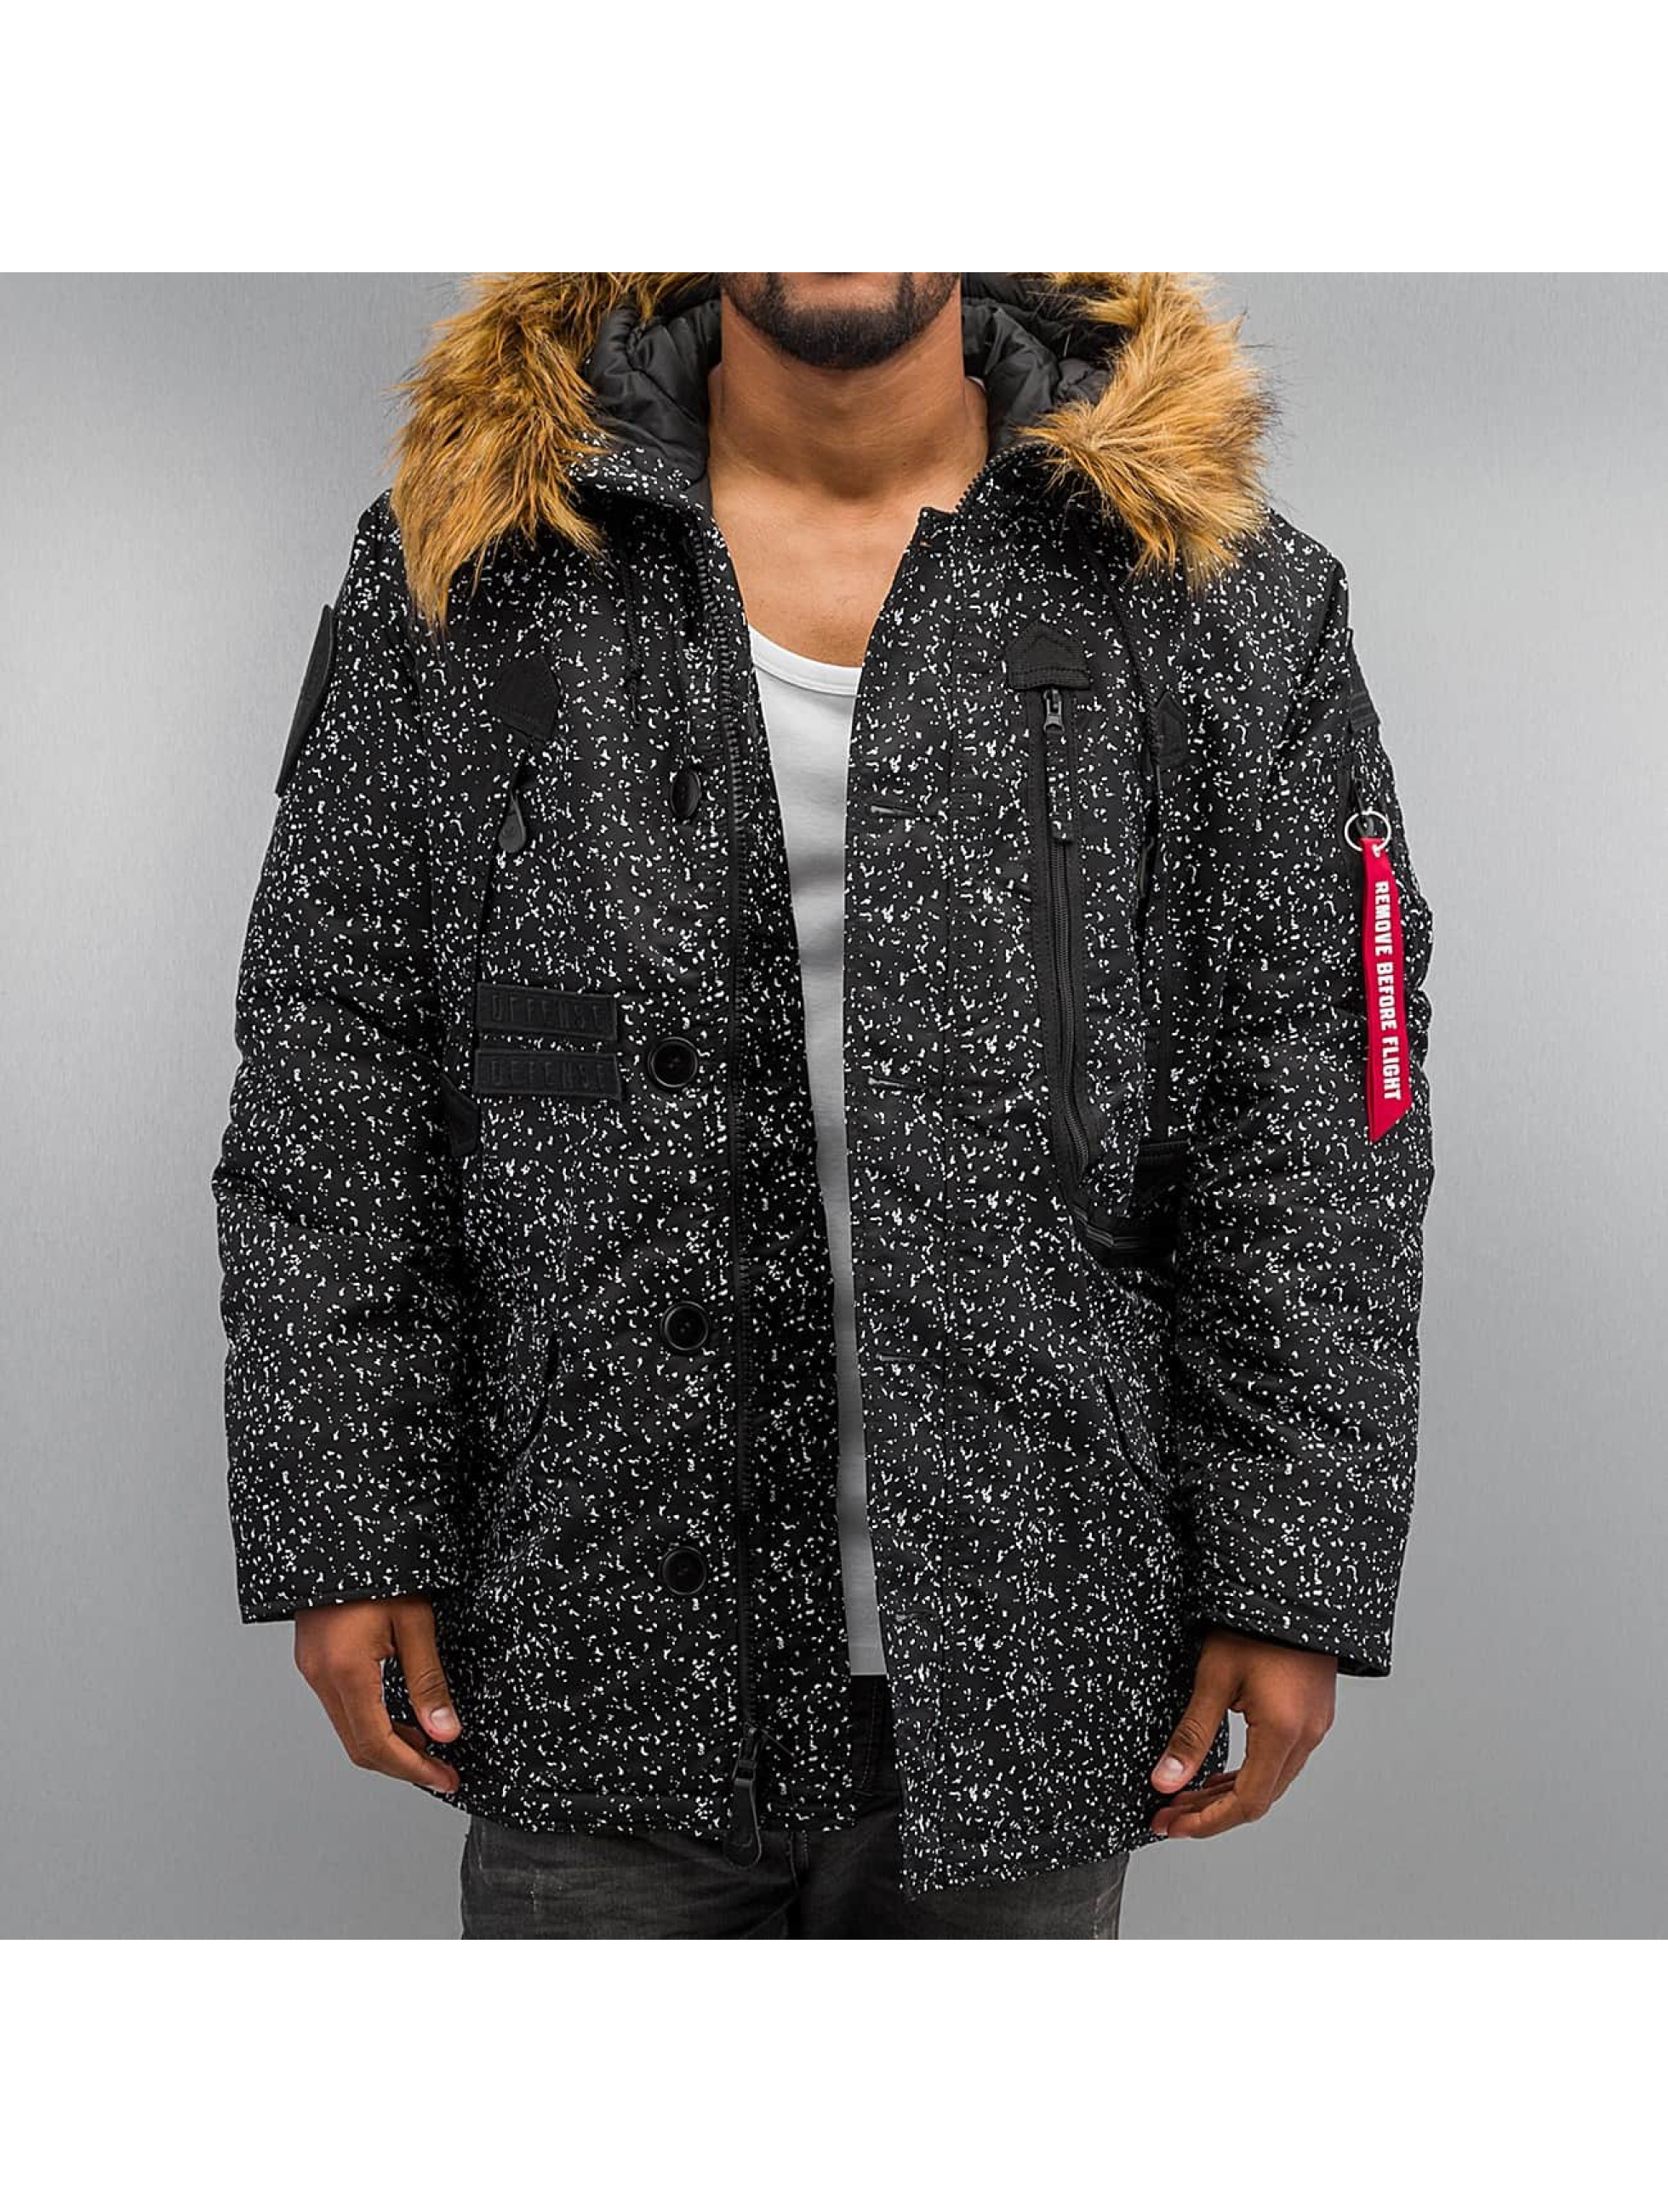 Alpha Industries Polar K1X S Jacket Black White Speckles